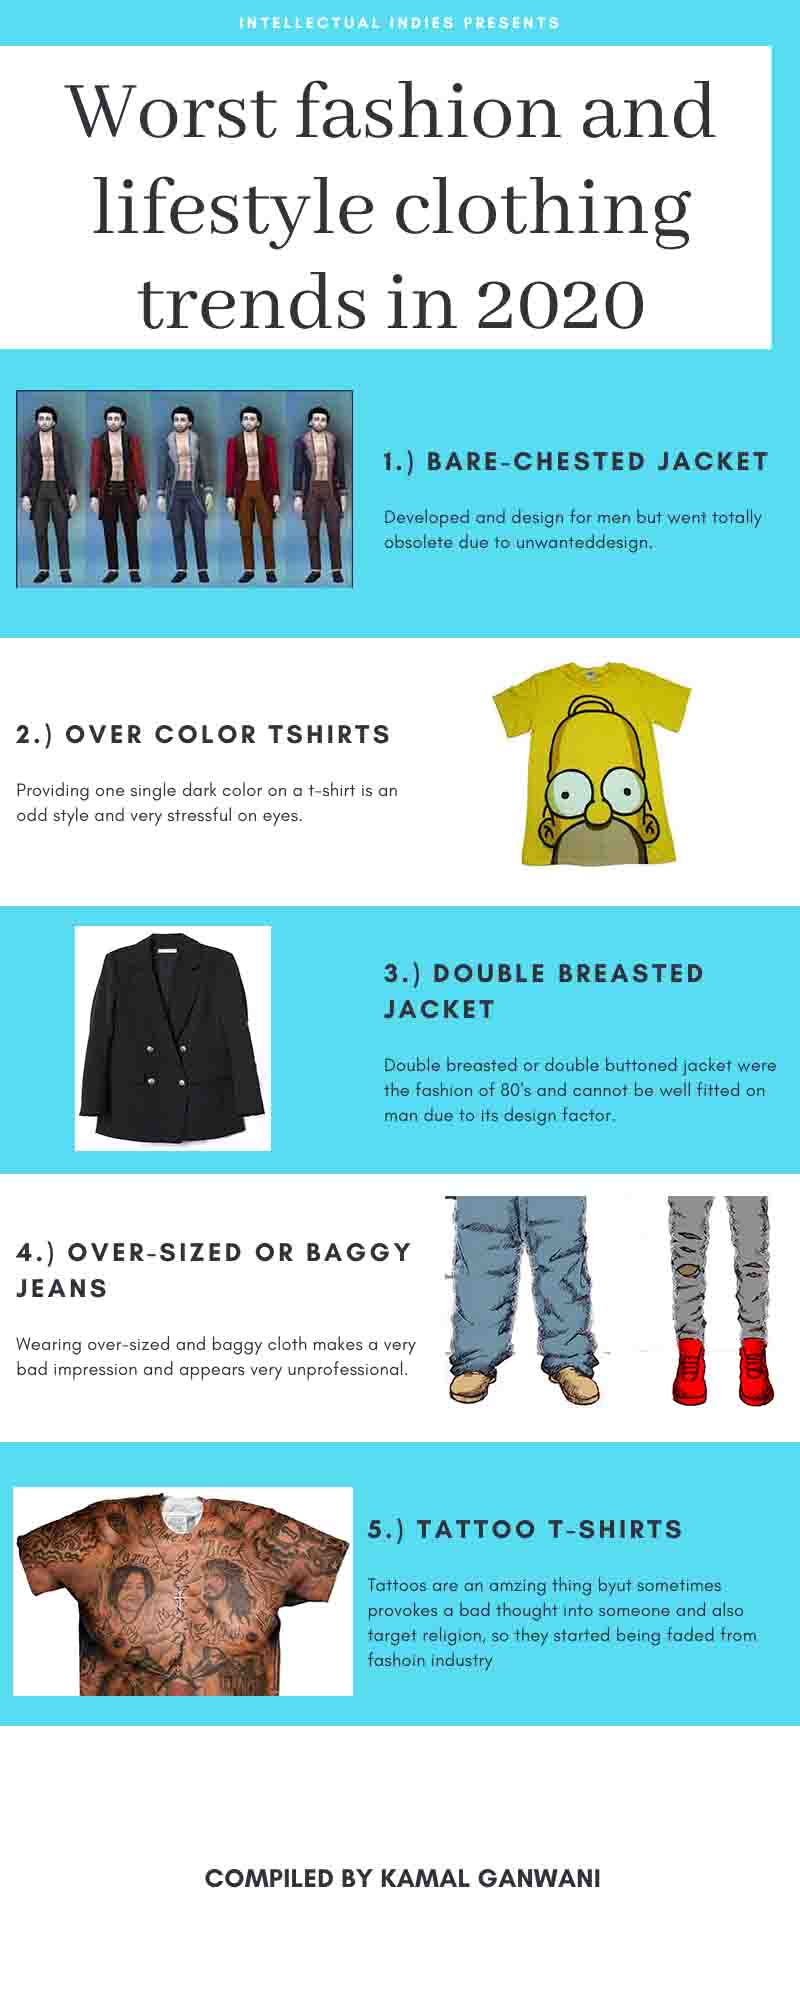 Worst fashion and lifestyle clothing trends in the world